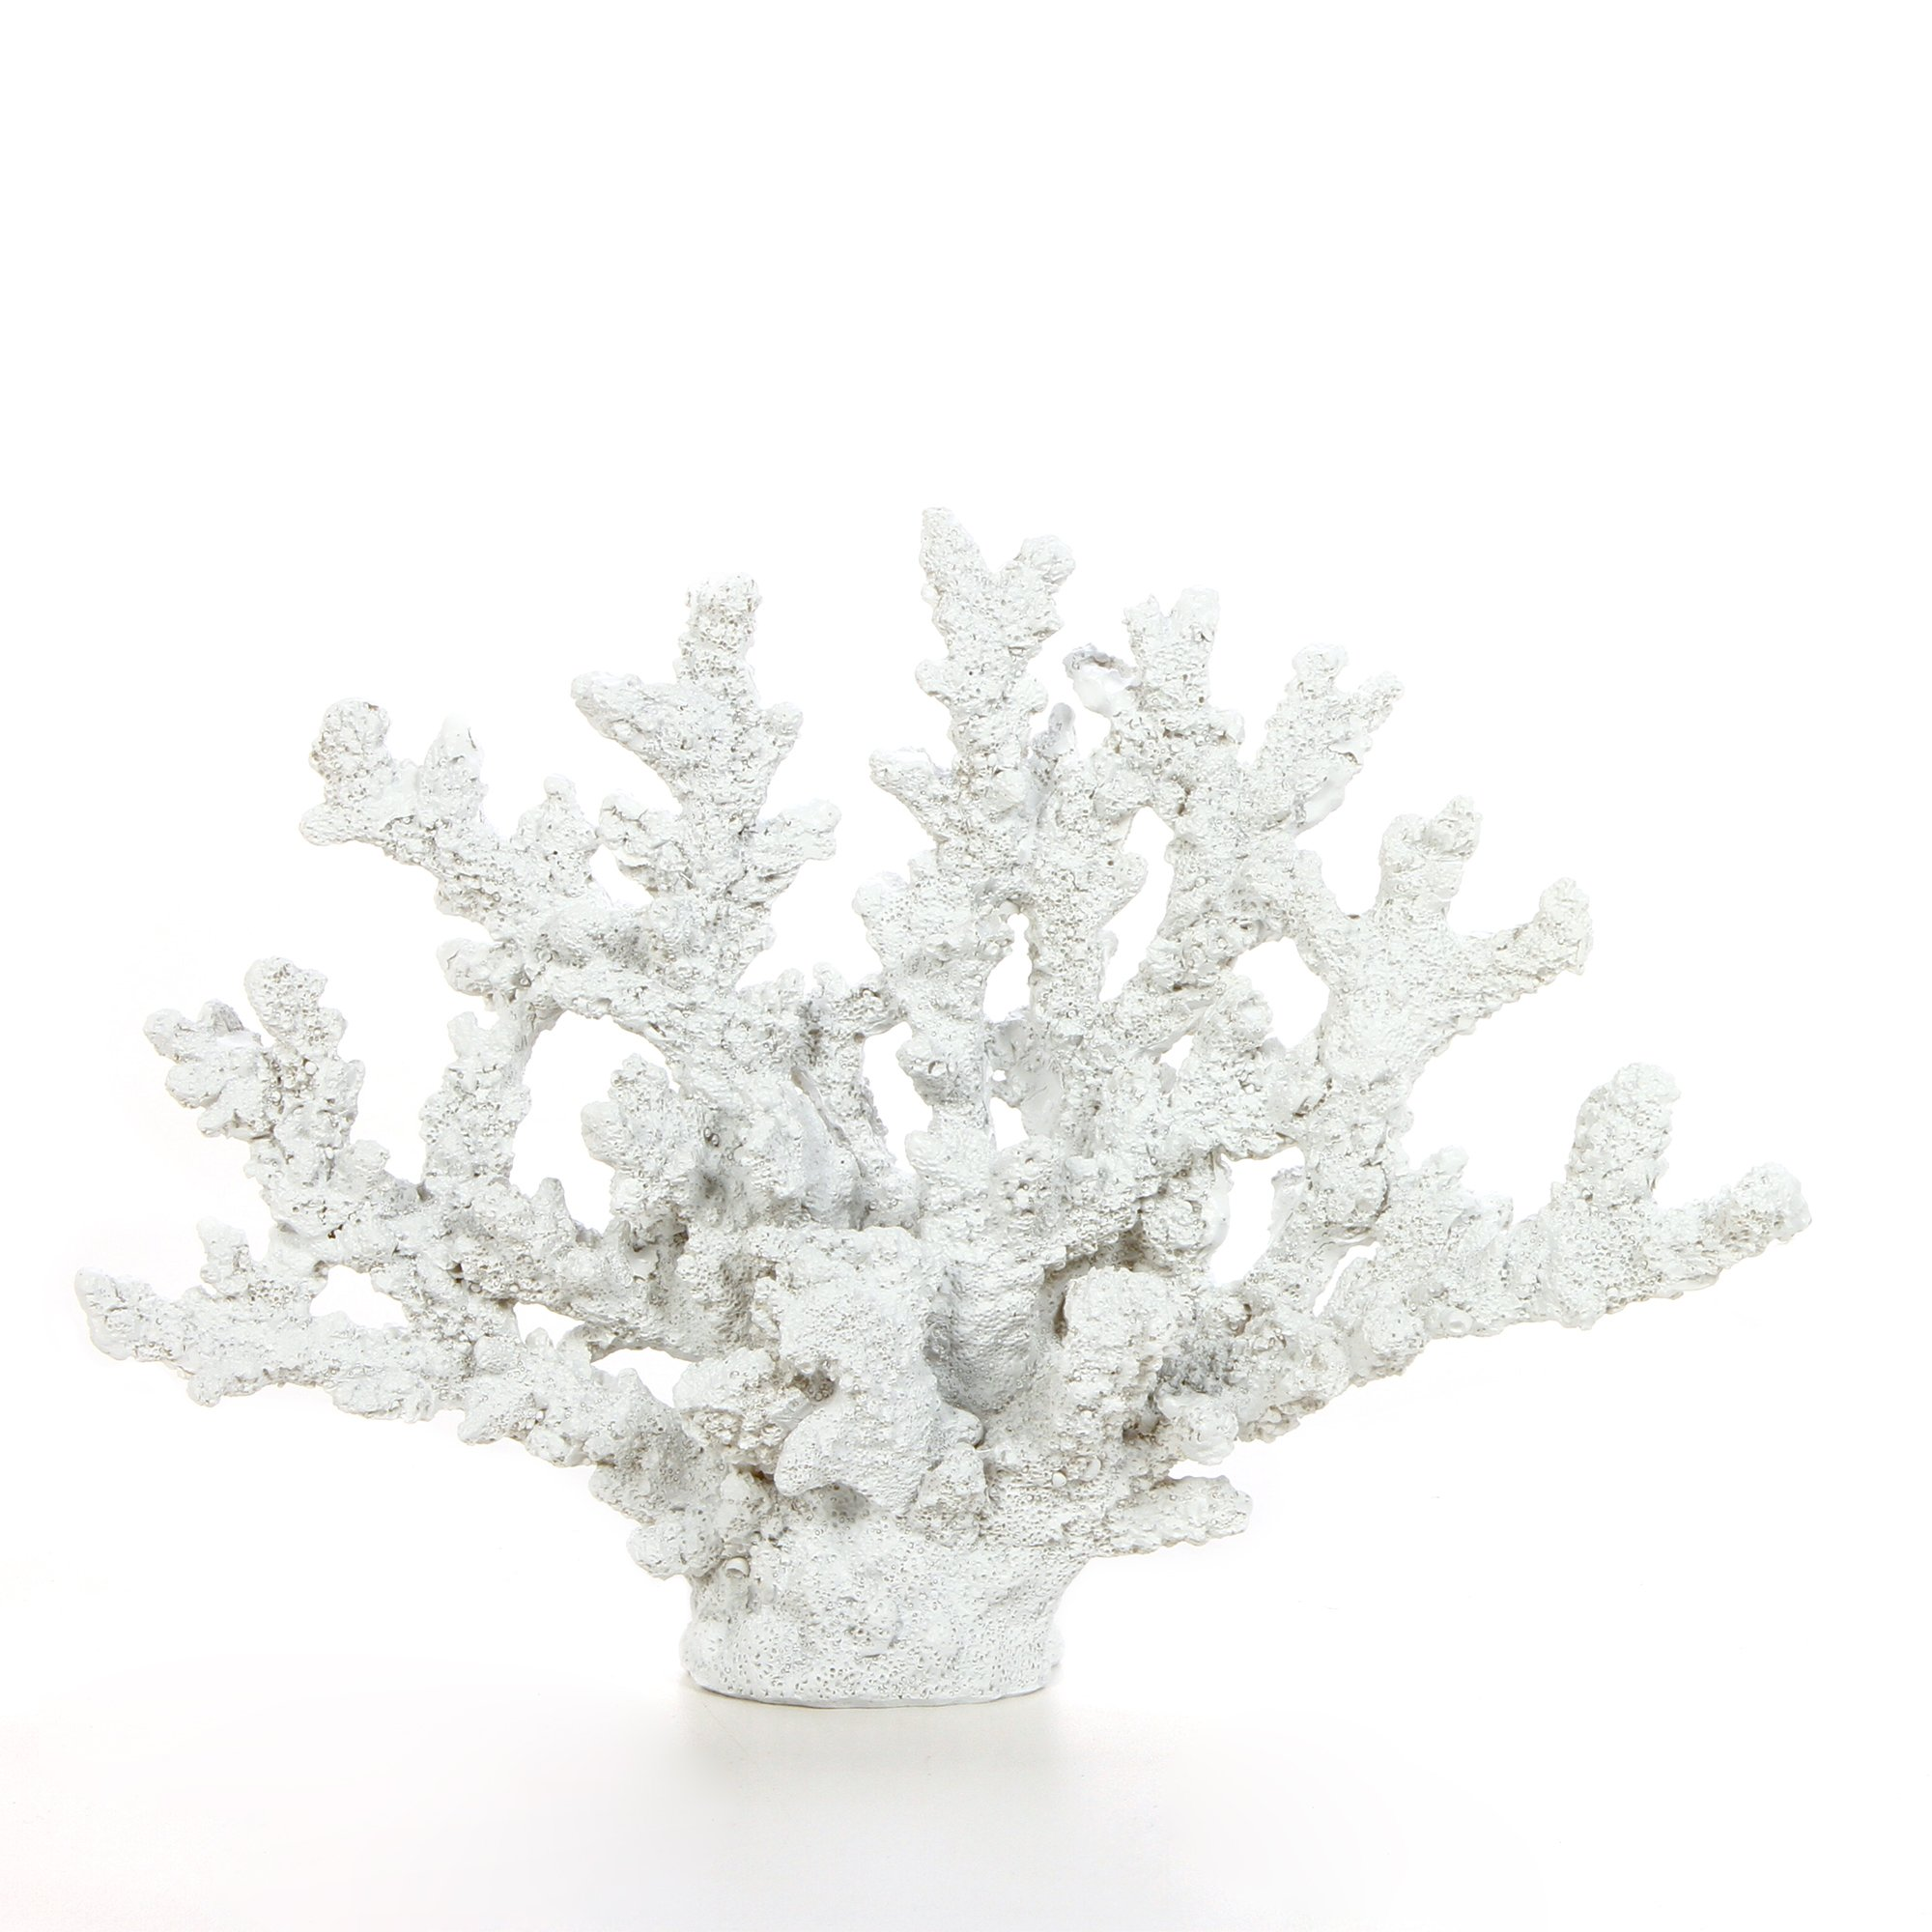 Hosley 7.75'' Tall, Decorative White Resin Tabletop Sculpture Coral. Ideal Gift for Wedding, Home, Party Favor, Spa, Reiki, Meditation, Bathroom Settings P9